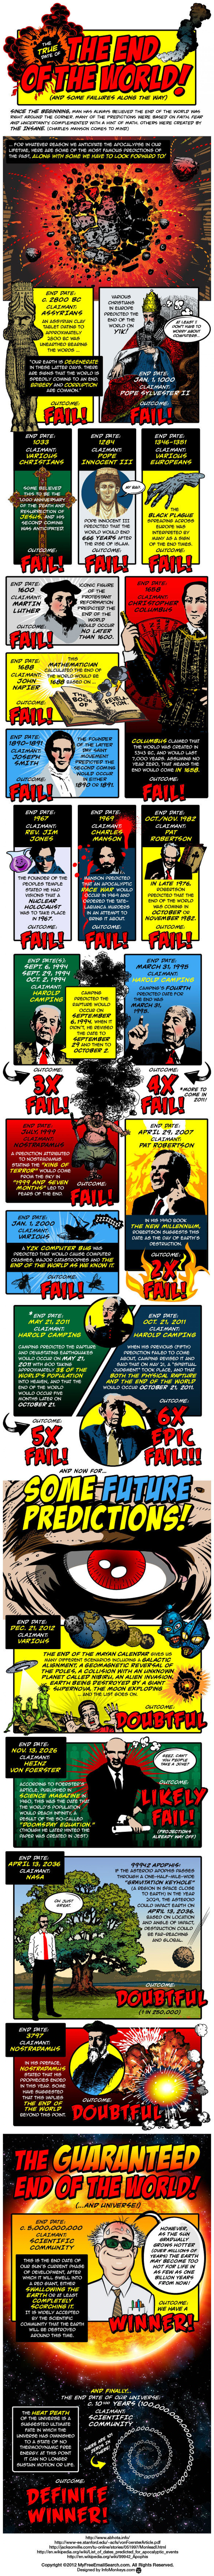 End of the World Predictions and Failures Infographic